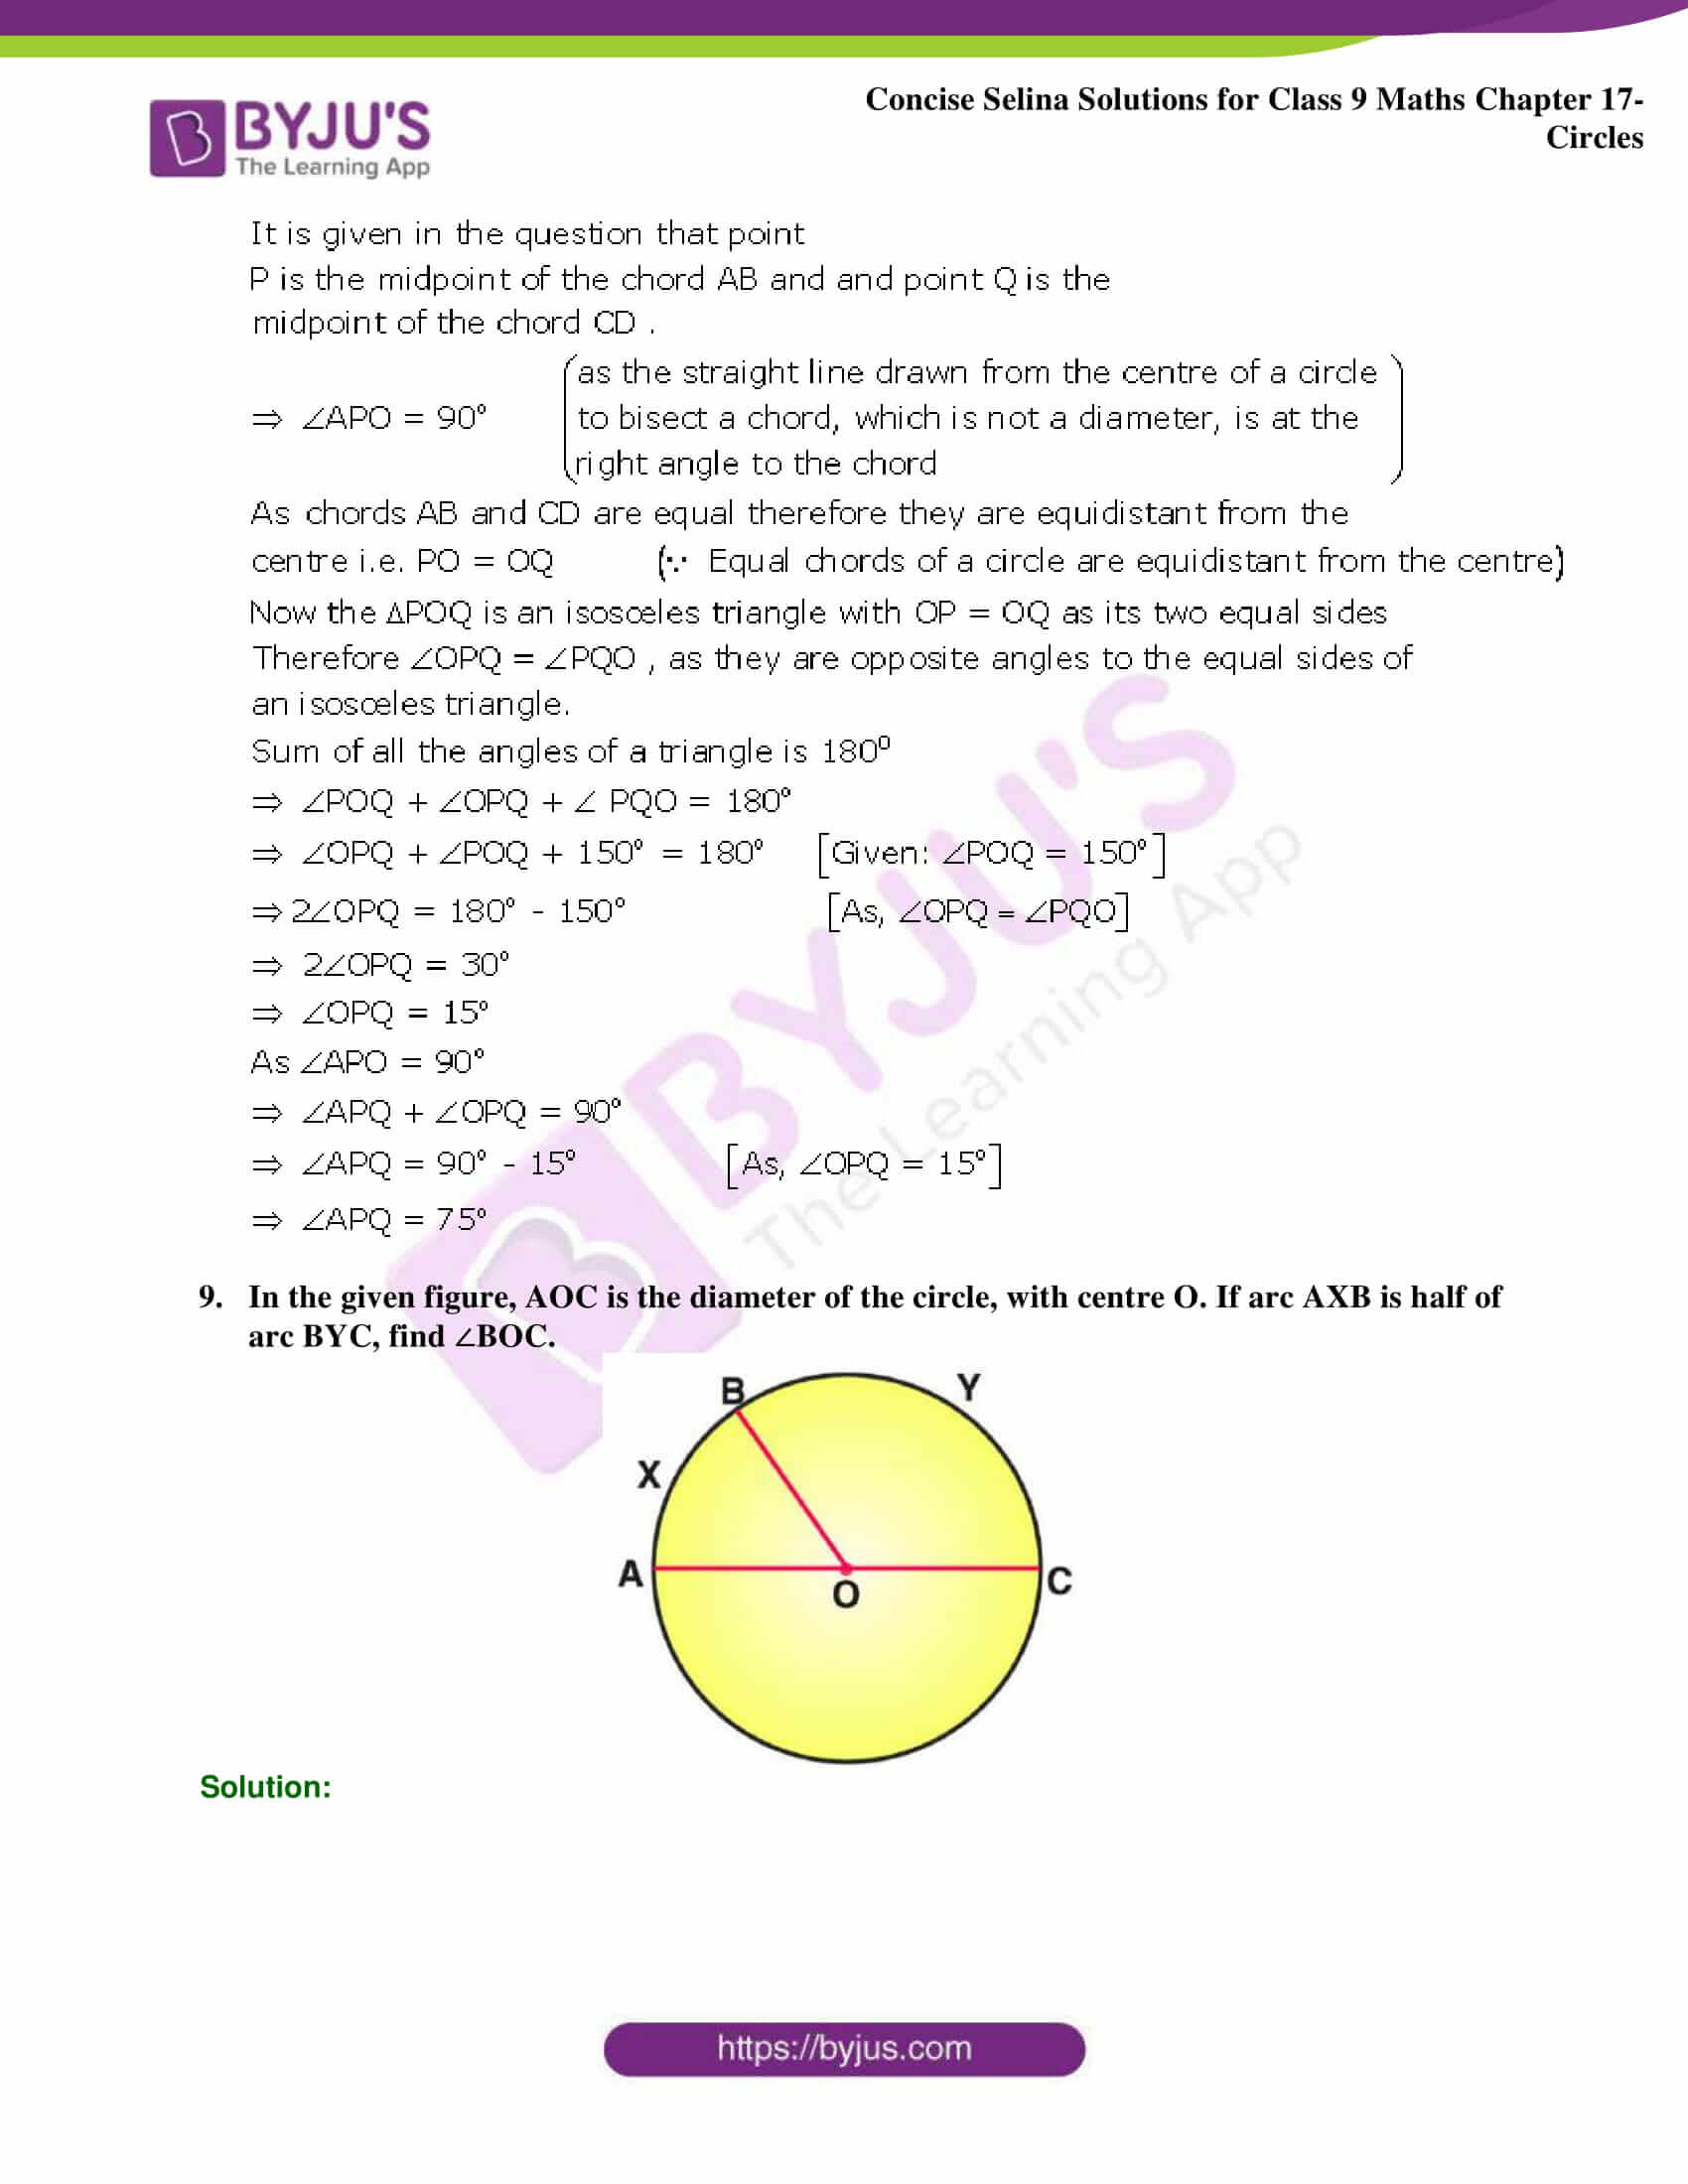 Concise Selina Solutions Class 9 Maths Chapter 17 Circles part 35